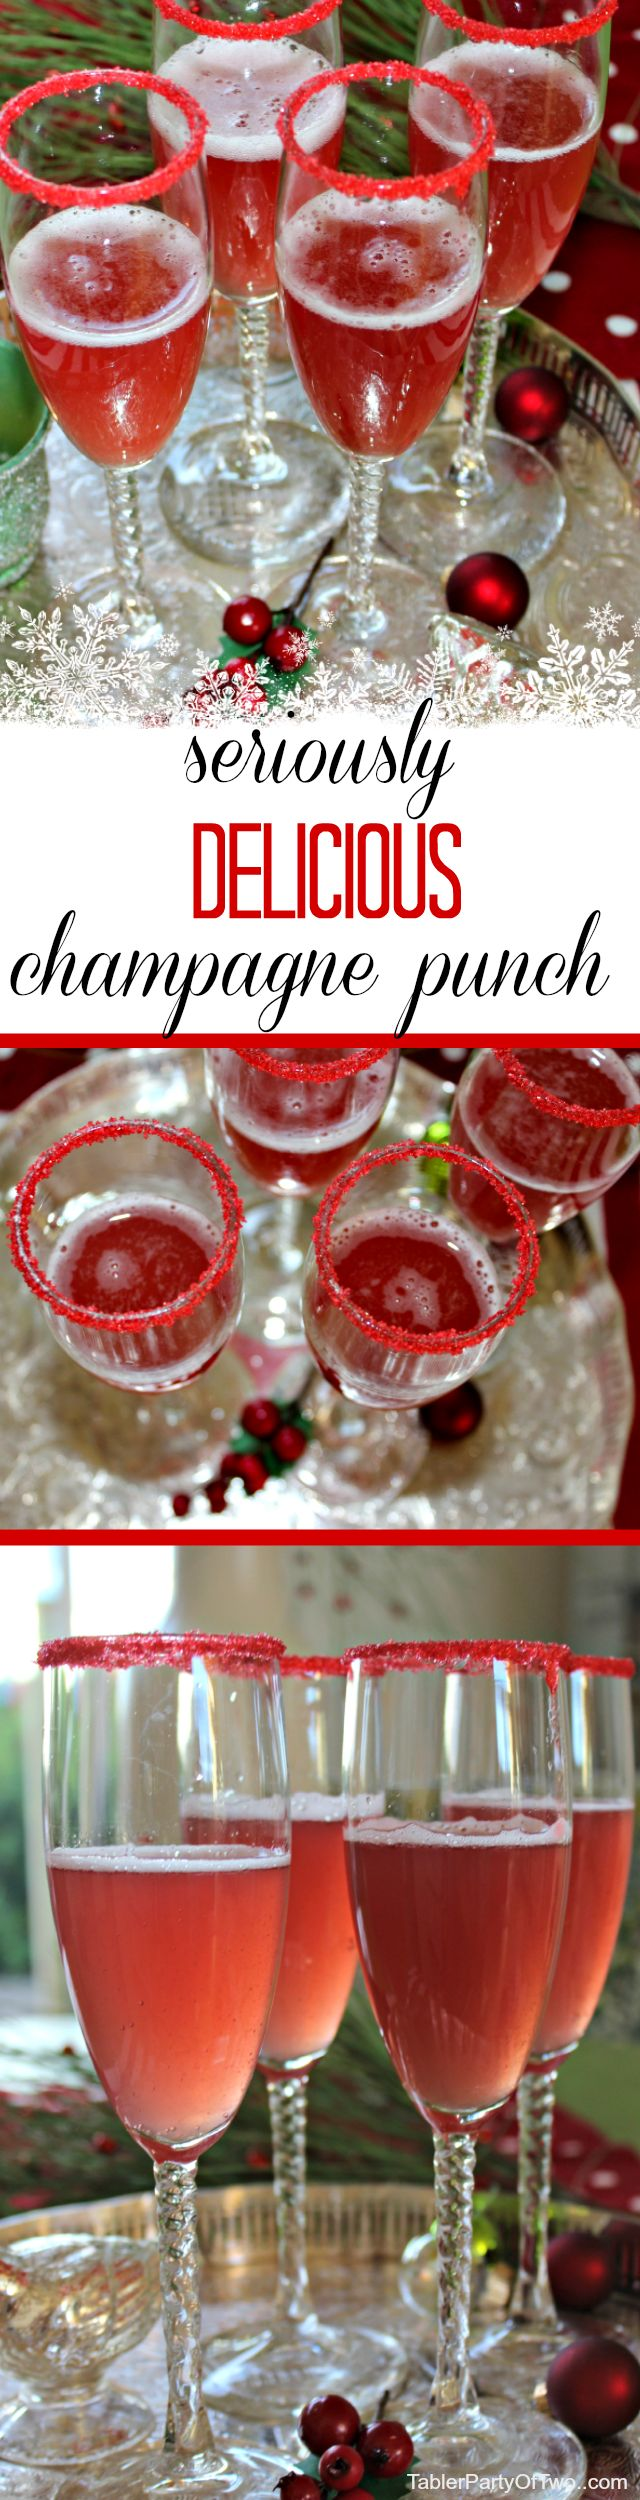 Seriously Delicious Champagne Punch easy to make, beautiful and a total crowd pleaser!: